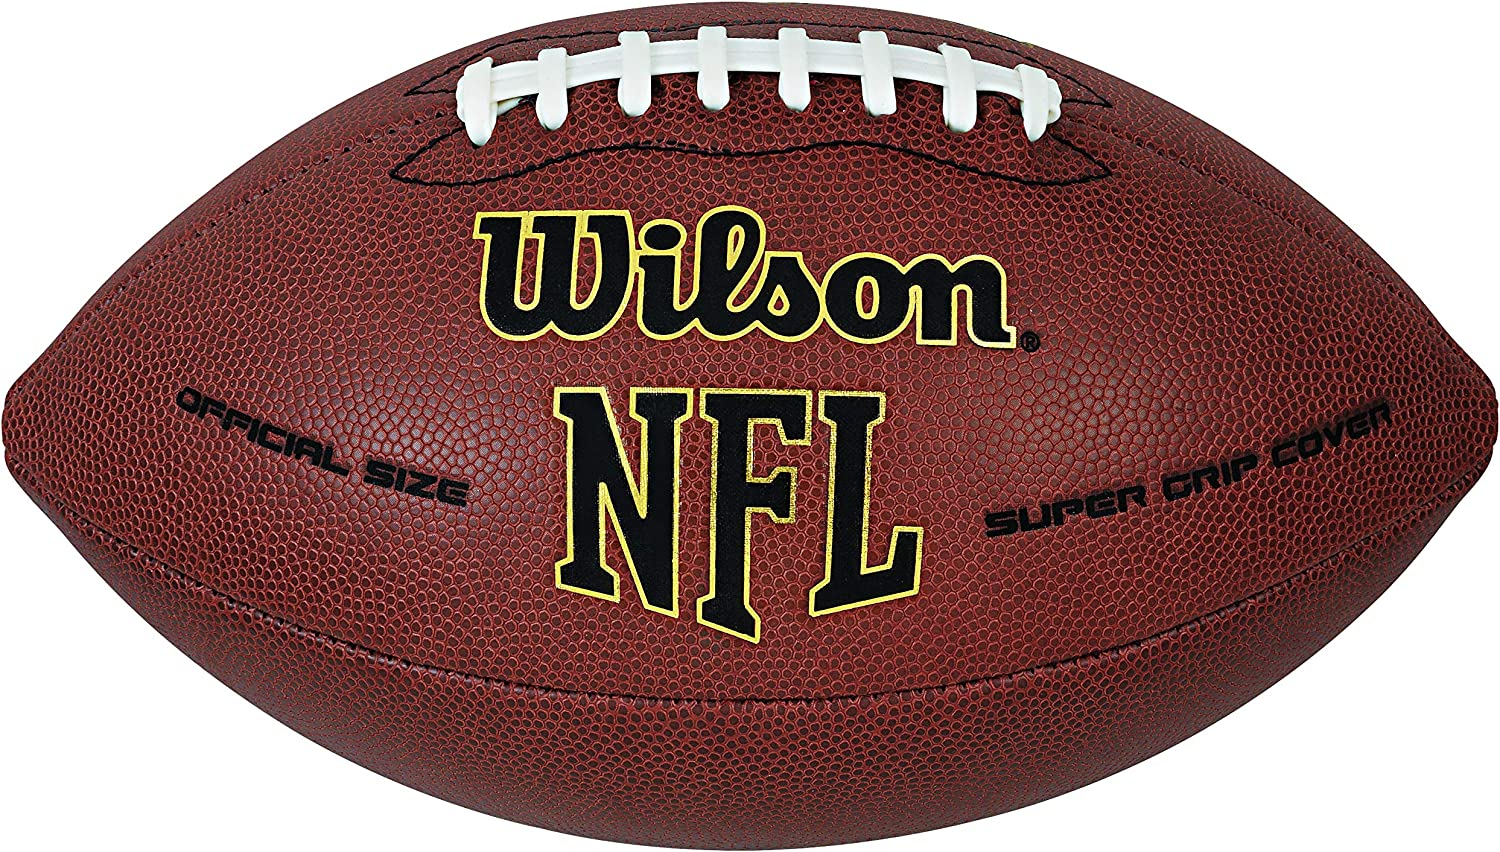 Wilson NFL Super Grip - Balón de fútbol Americano, Color marrón ...